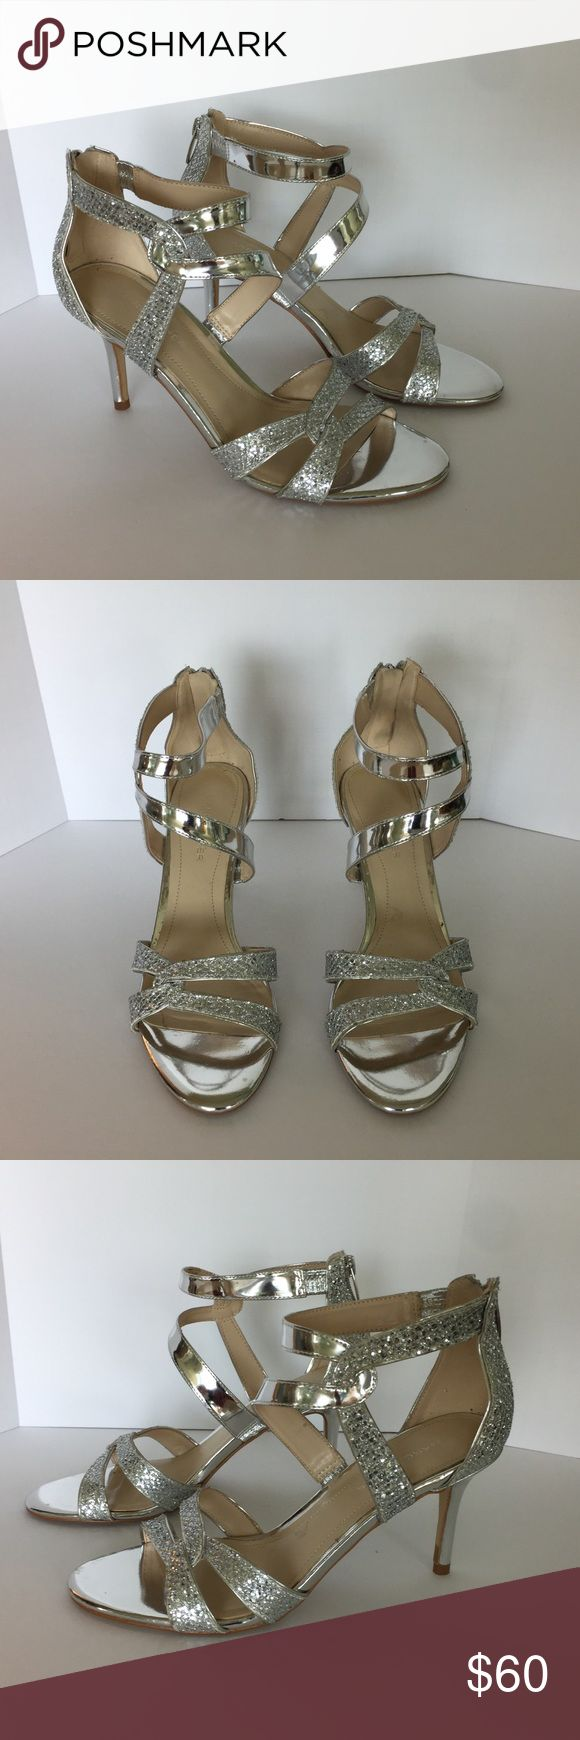 Marc Fisher silver glitter heels Marc Fisher silver glitter heels.  Worn once, excellent condition Marc Fisher Shoes Heels